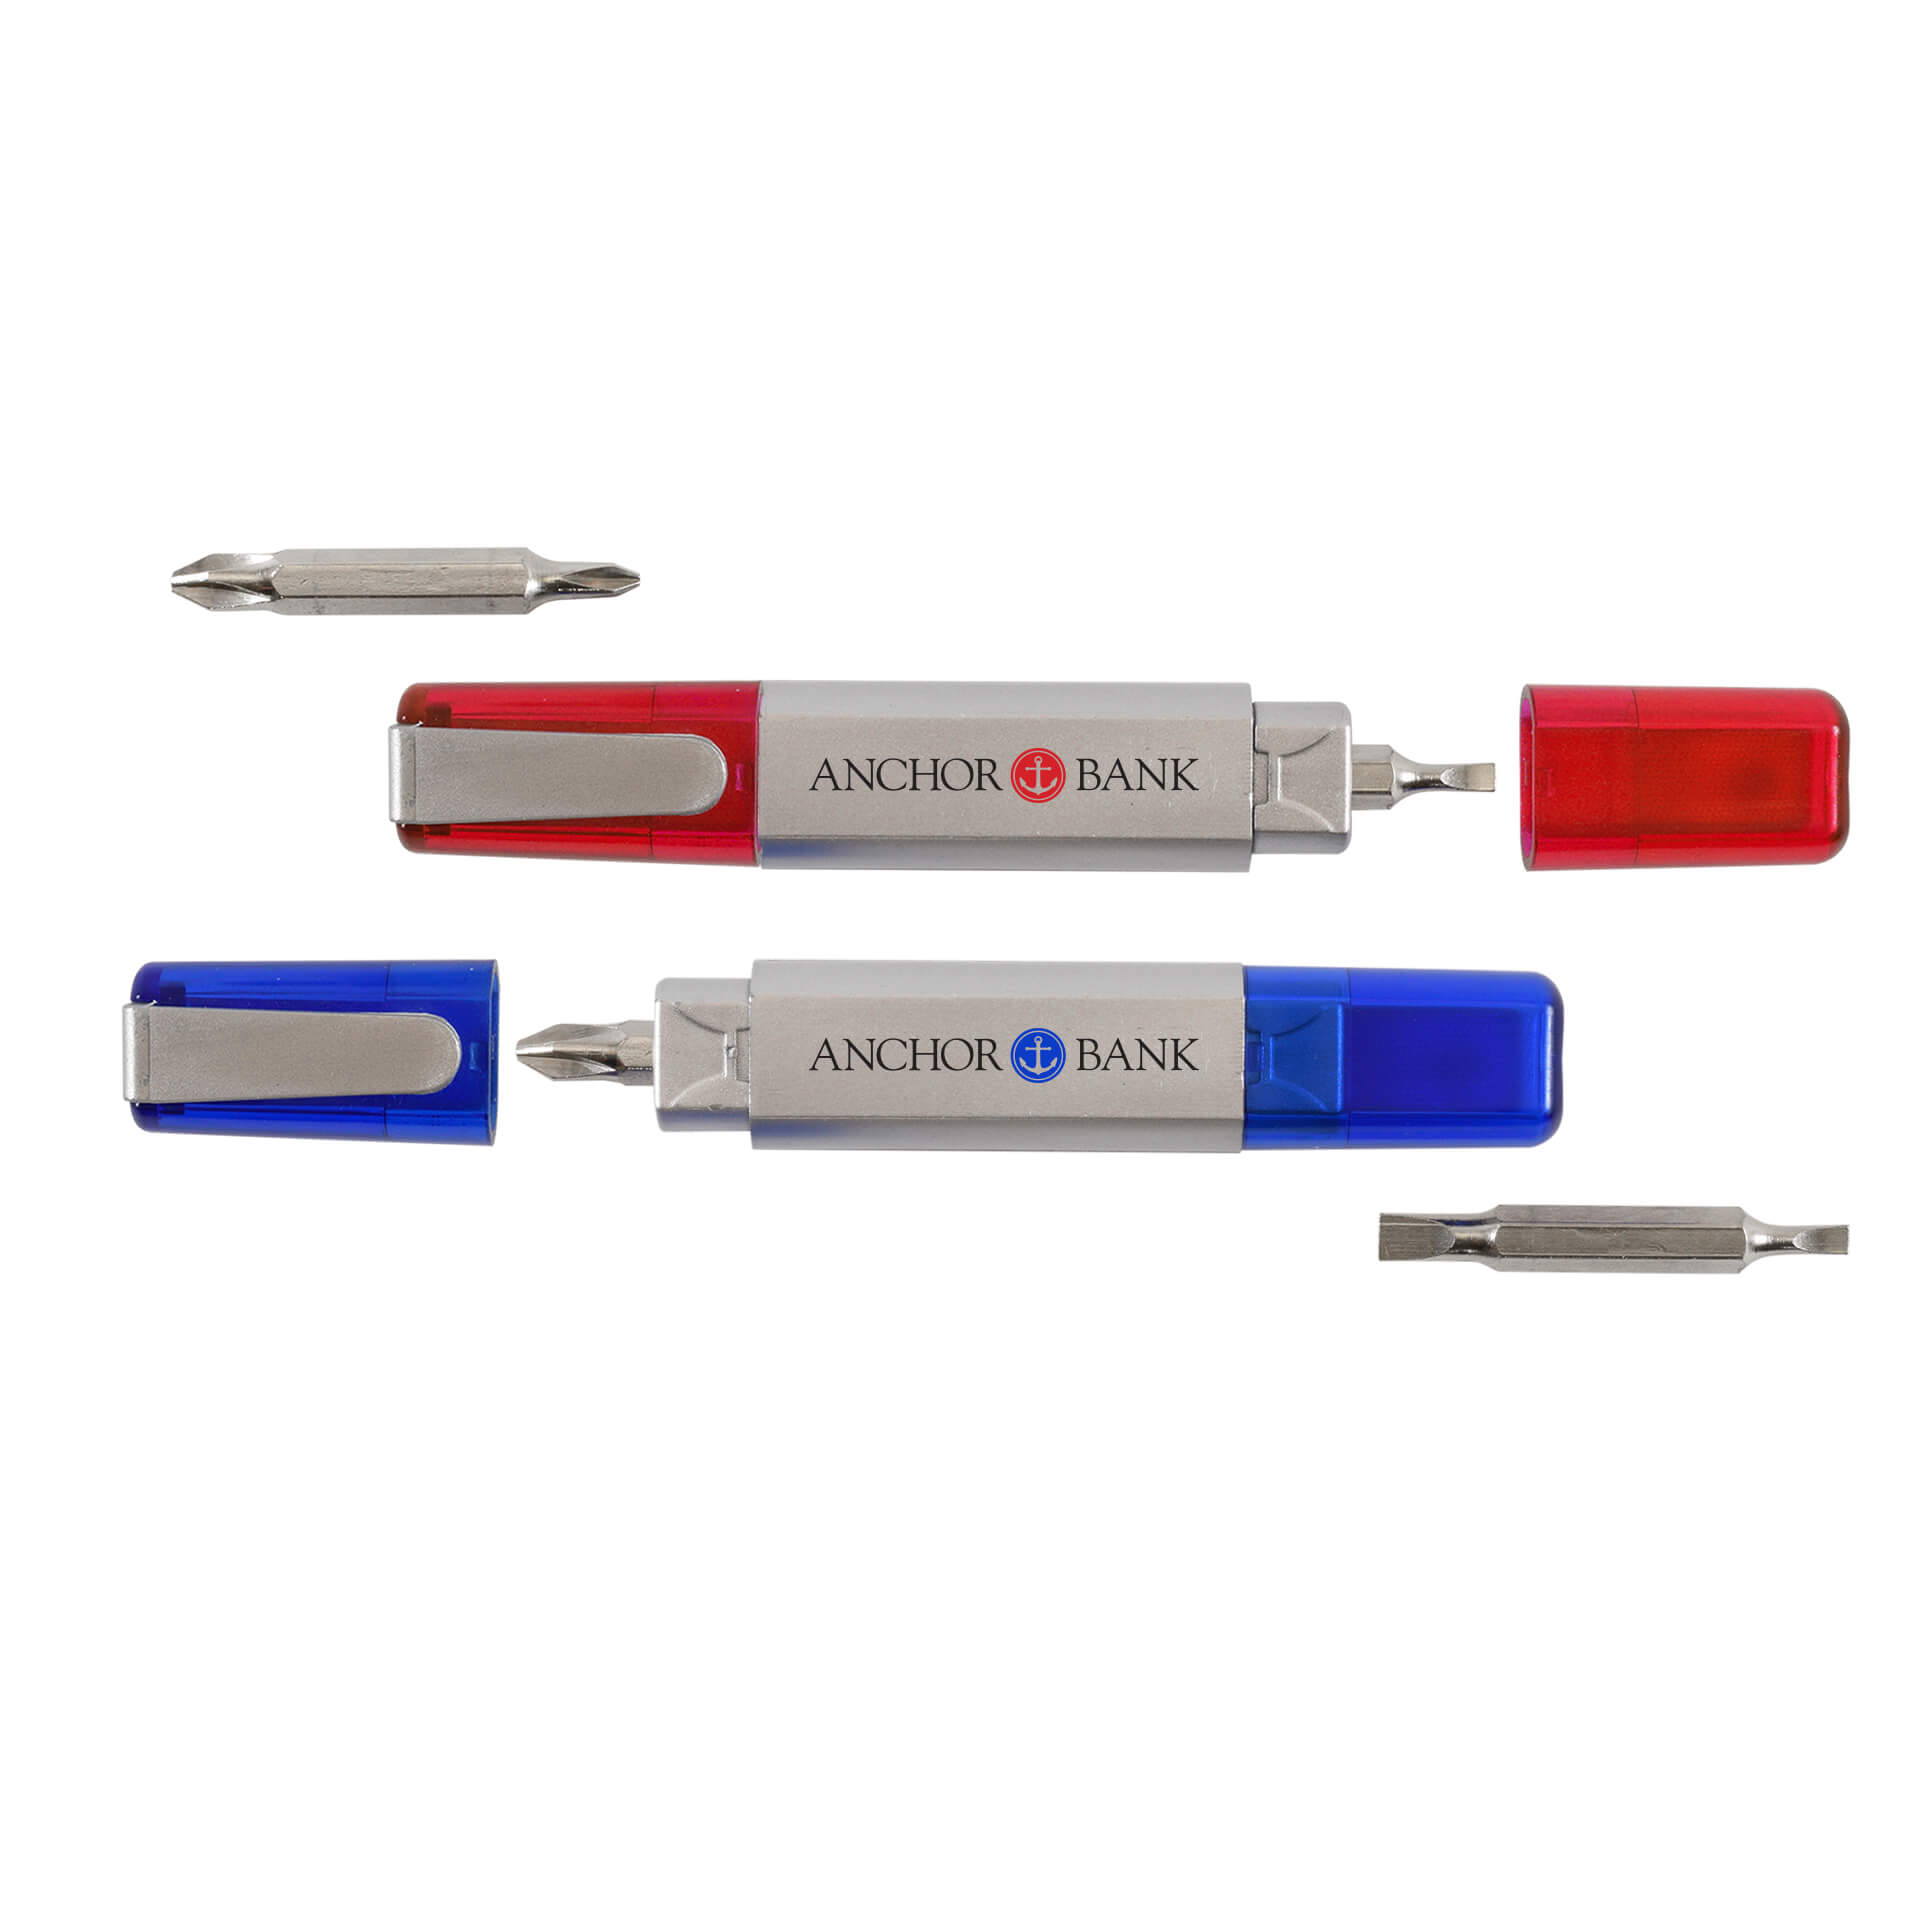 Item: Mi8836 - 4-In-One Magnetic Screwdriver